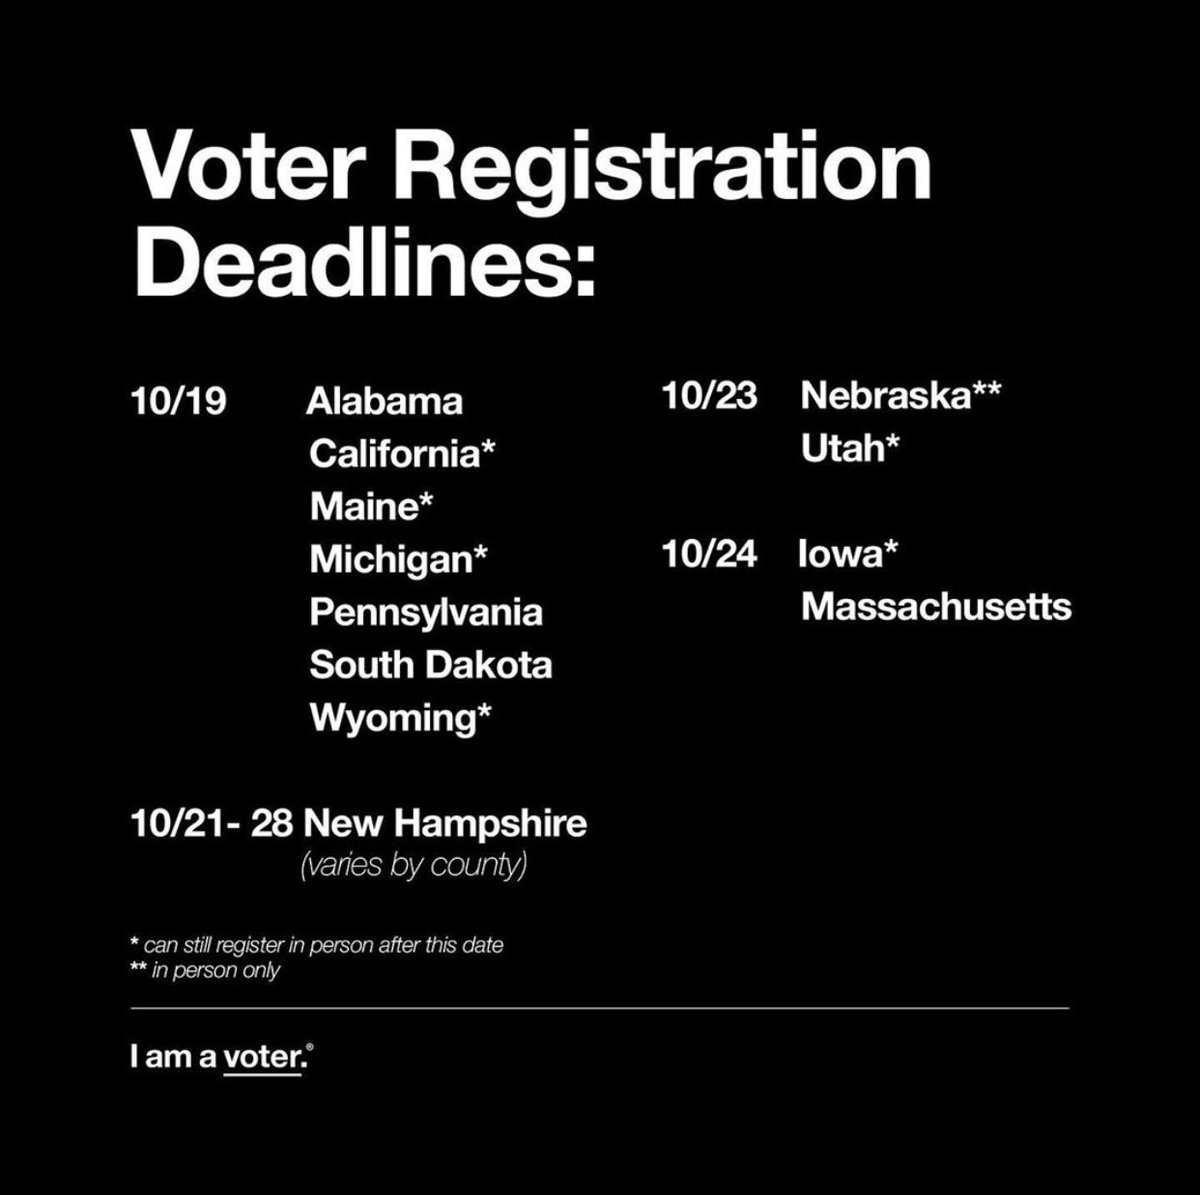 This week in voting is going to be a big one! 🥳 And @iamavoter_ has a lot of important info for you. As of today more than 28 million have already voted, according to the US Elections Project. That's more than six times the number of votes cast by the same point in 2016! https://t.co/LWCMOACbgc